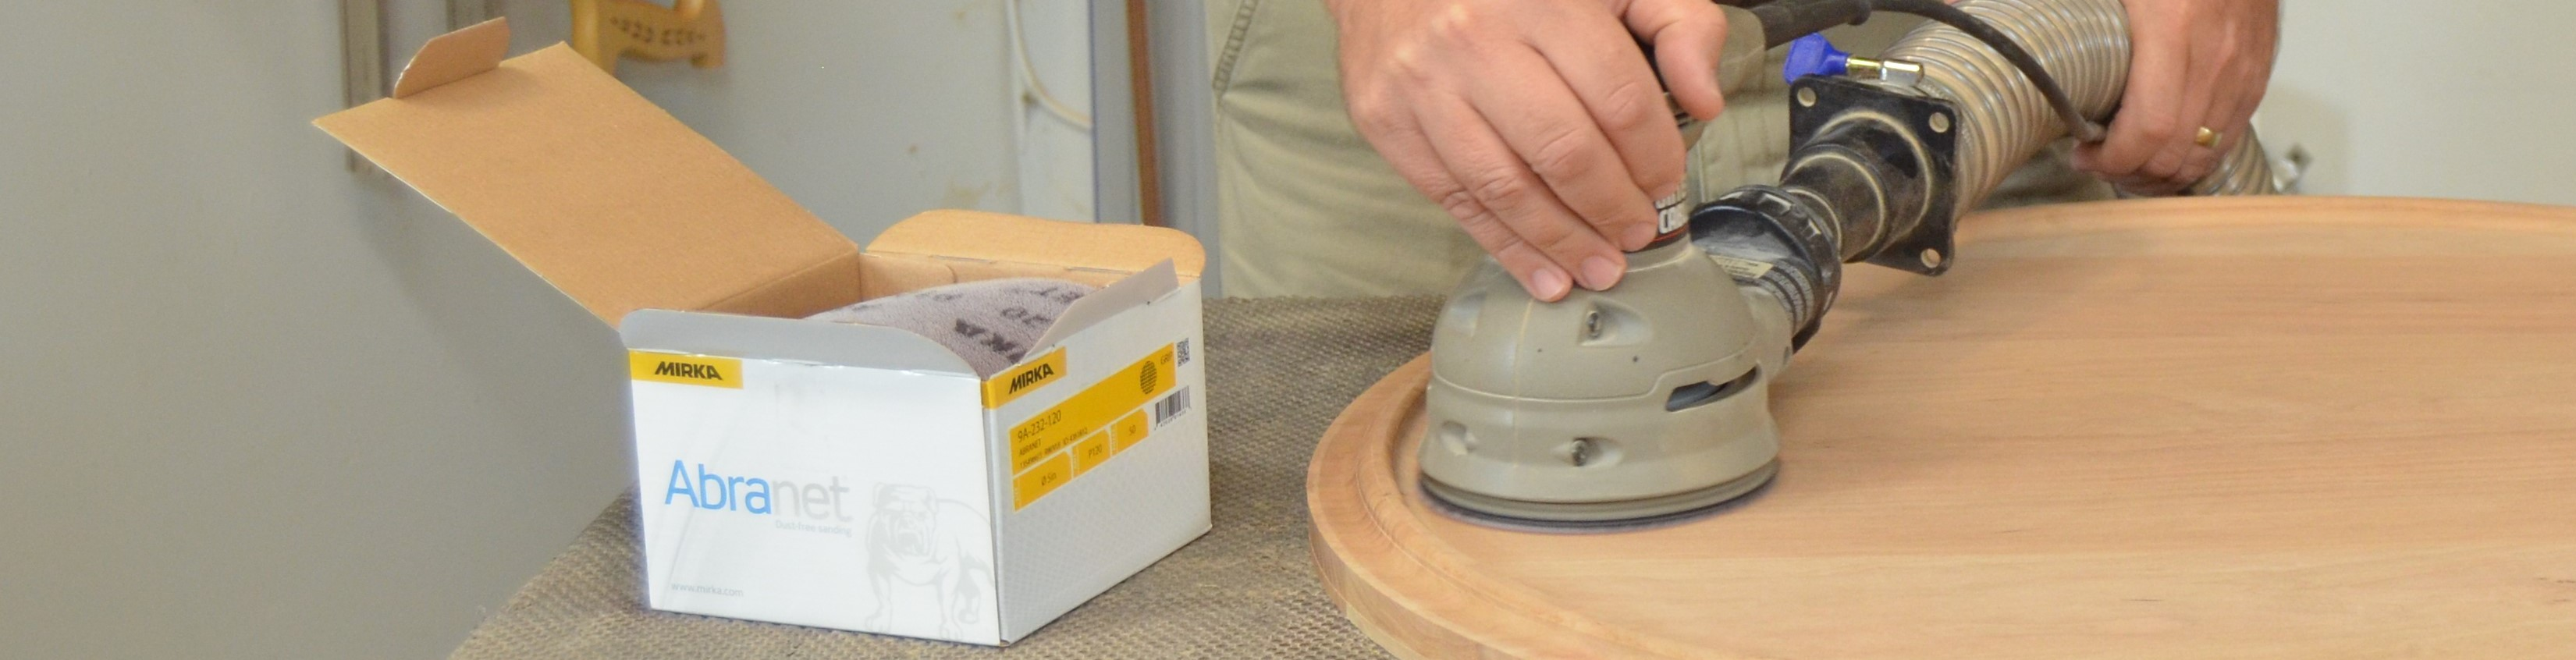 2sand. com | Your source for Abrasives